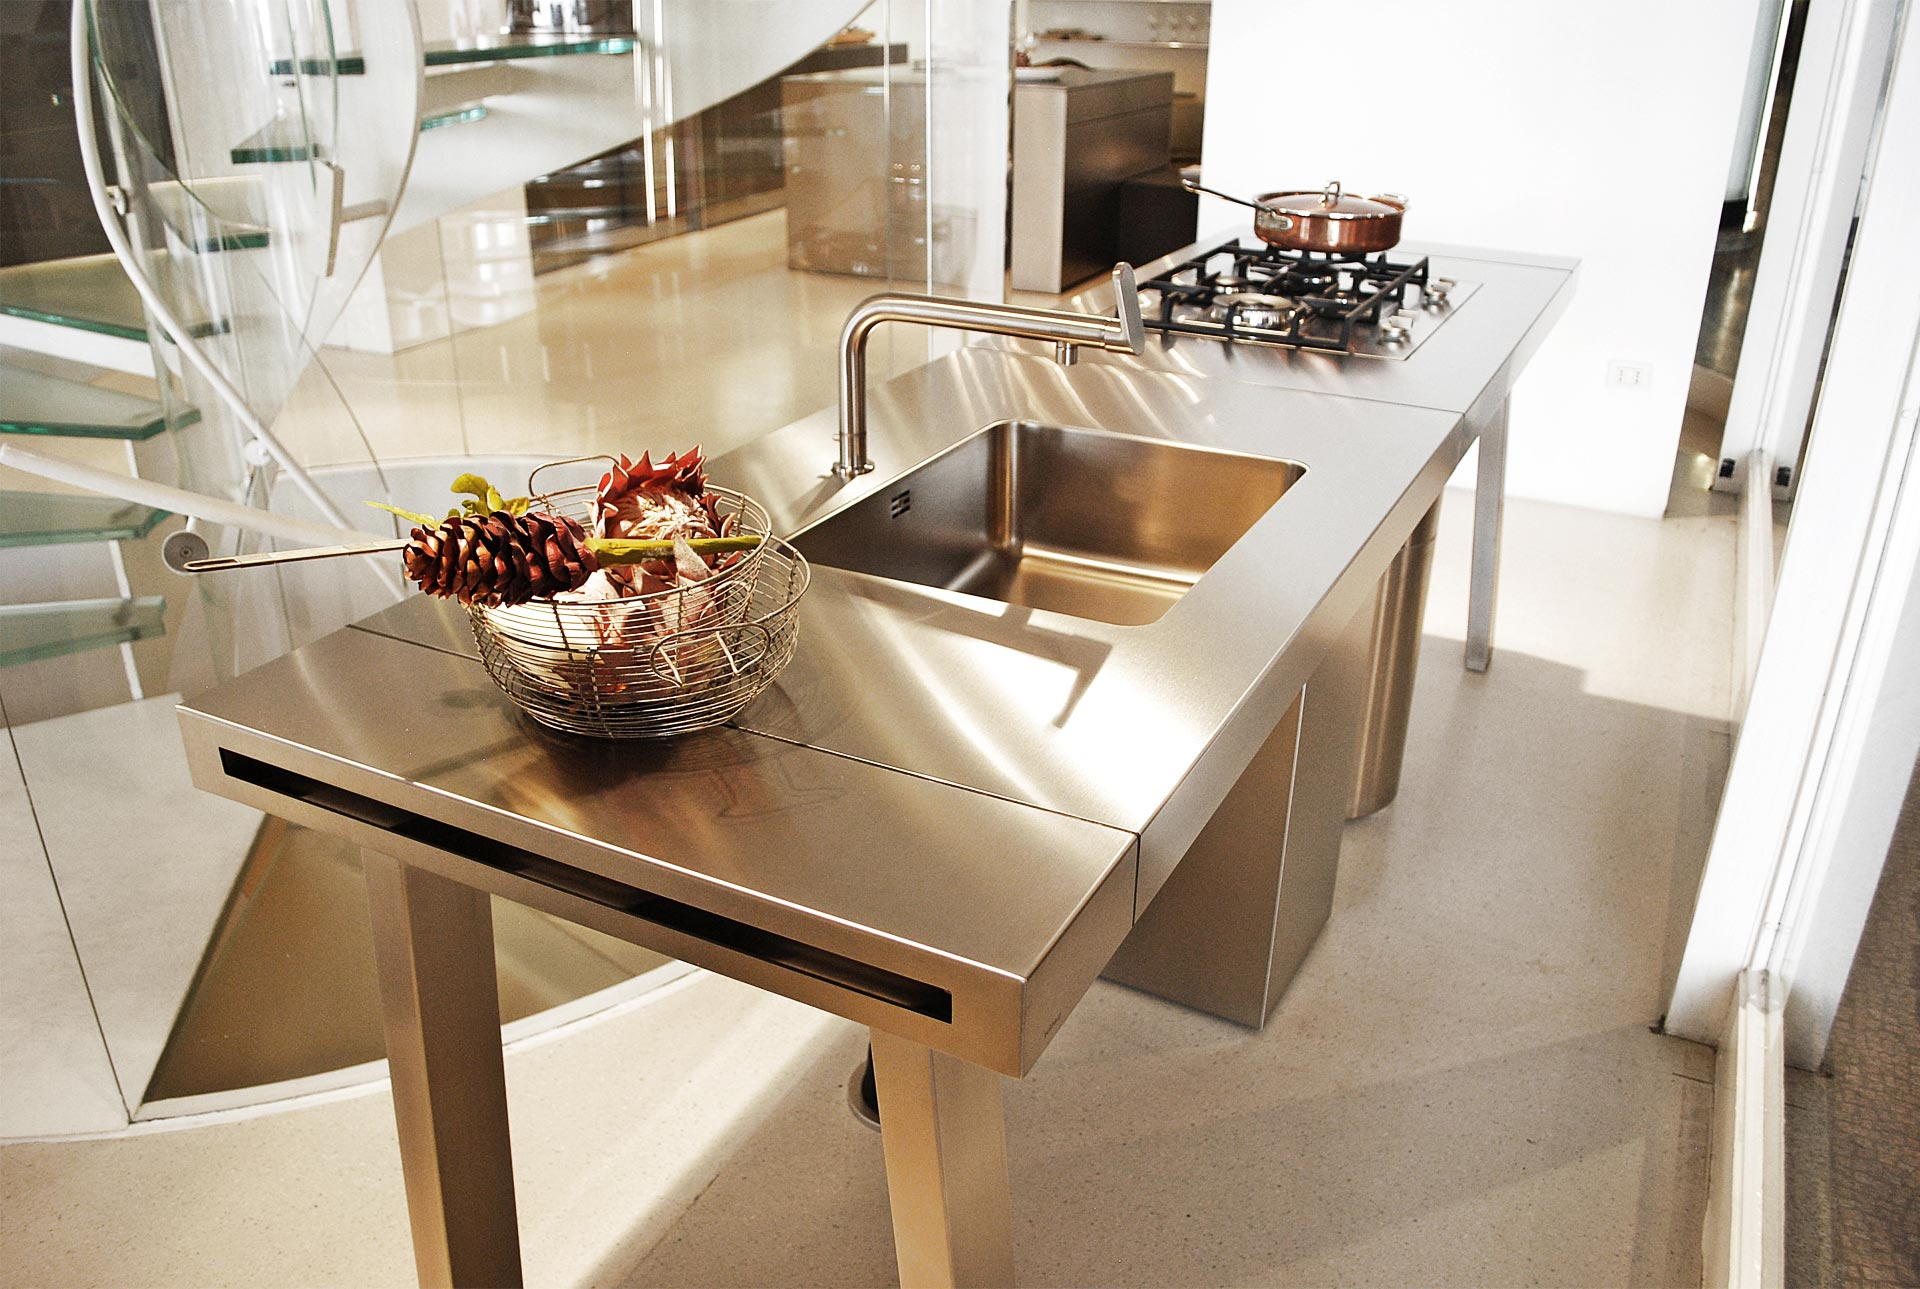 Bulthaup B2 bulthaup b2 best approx month bulthaup b kitchen stainless